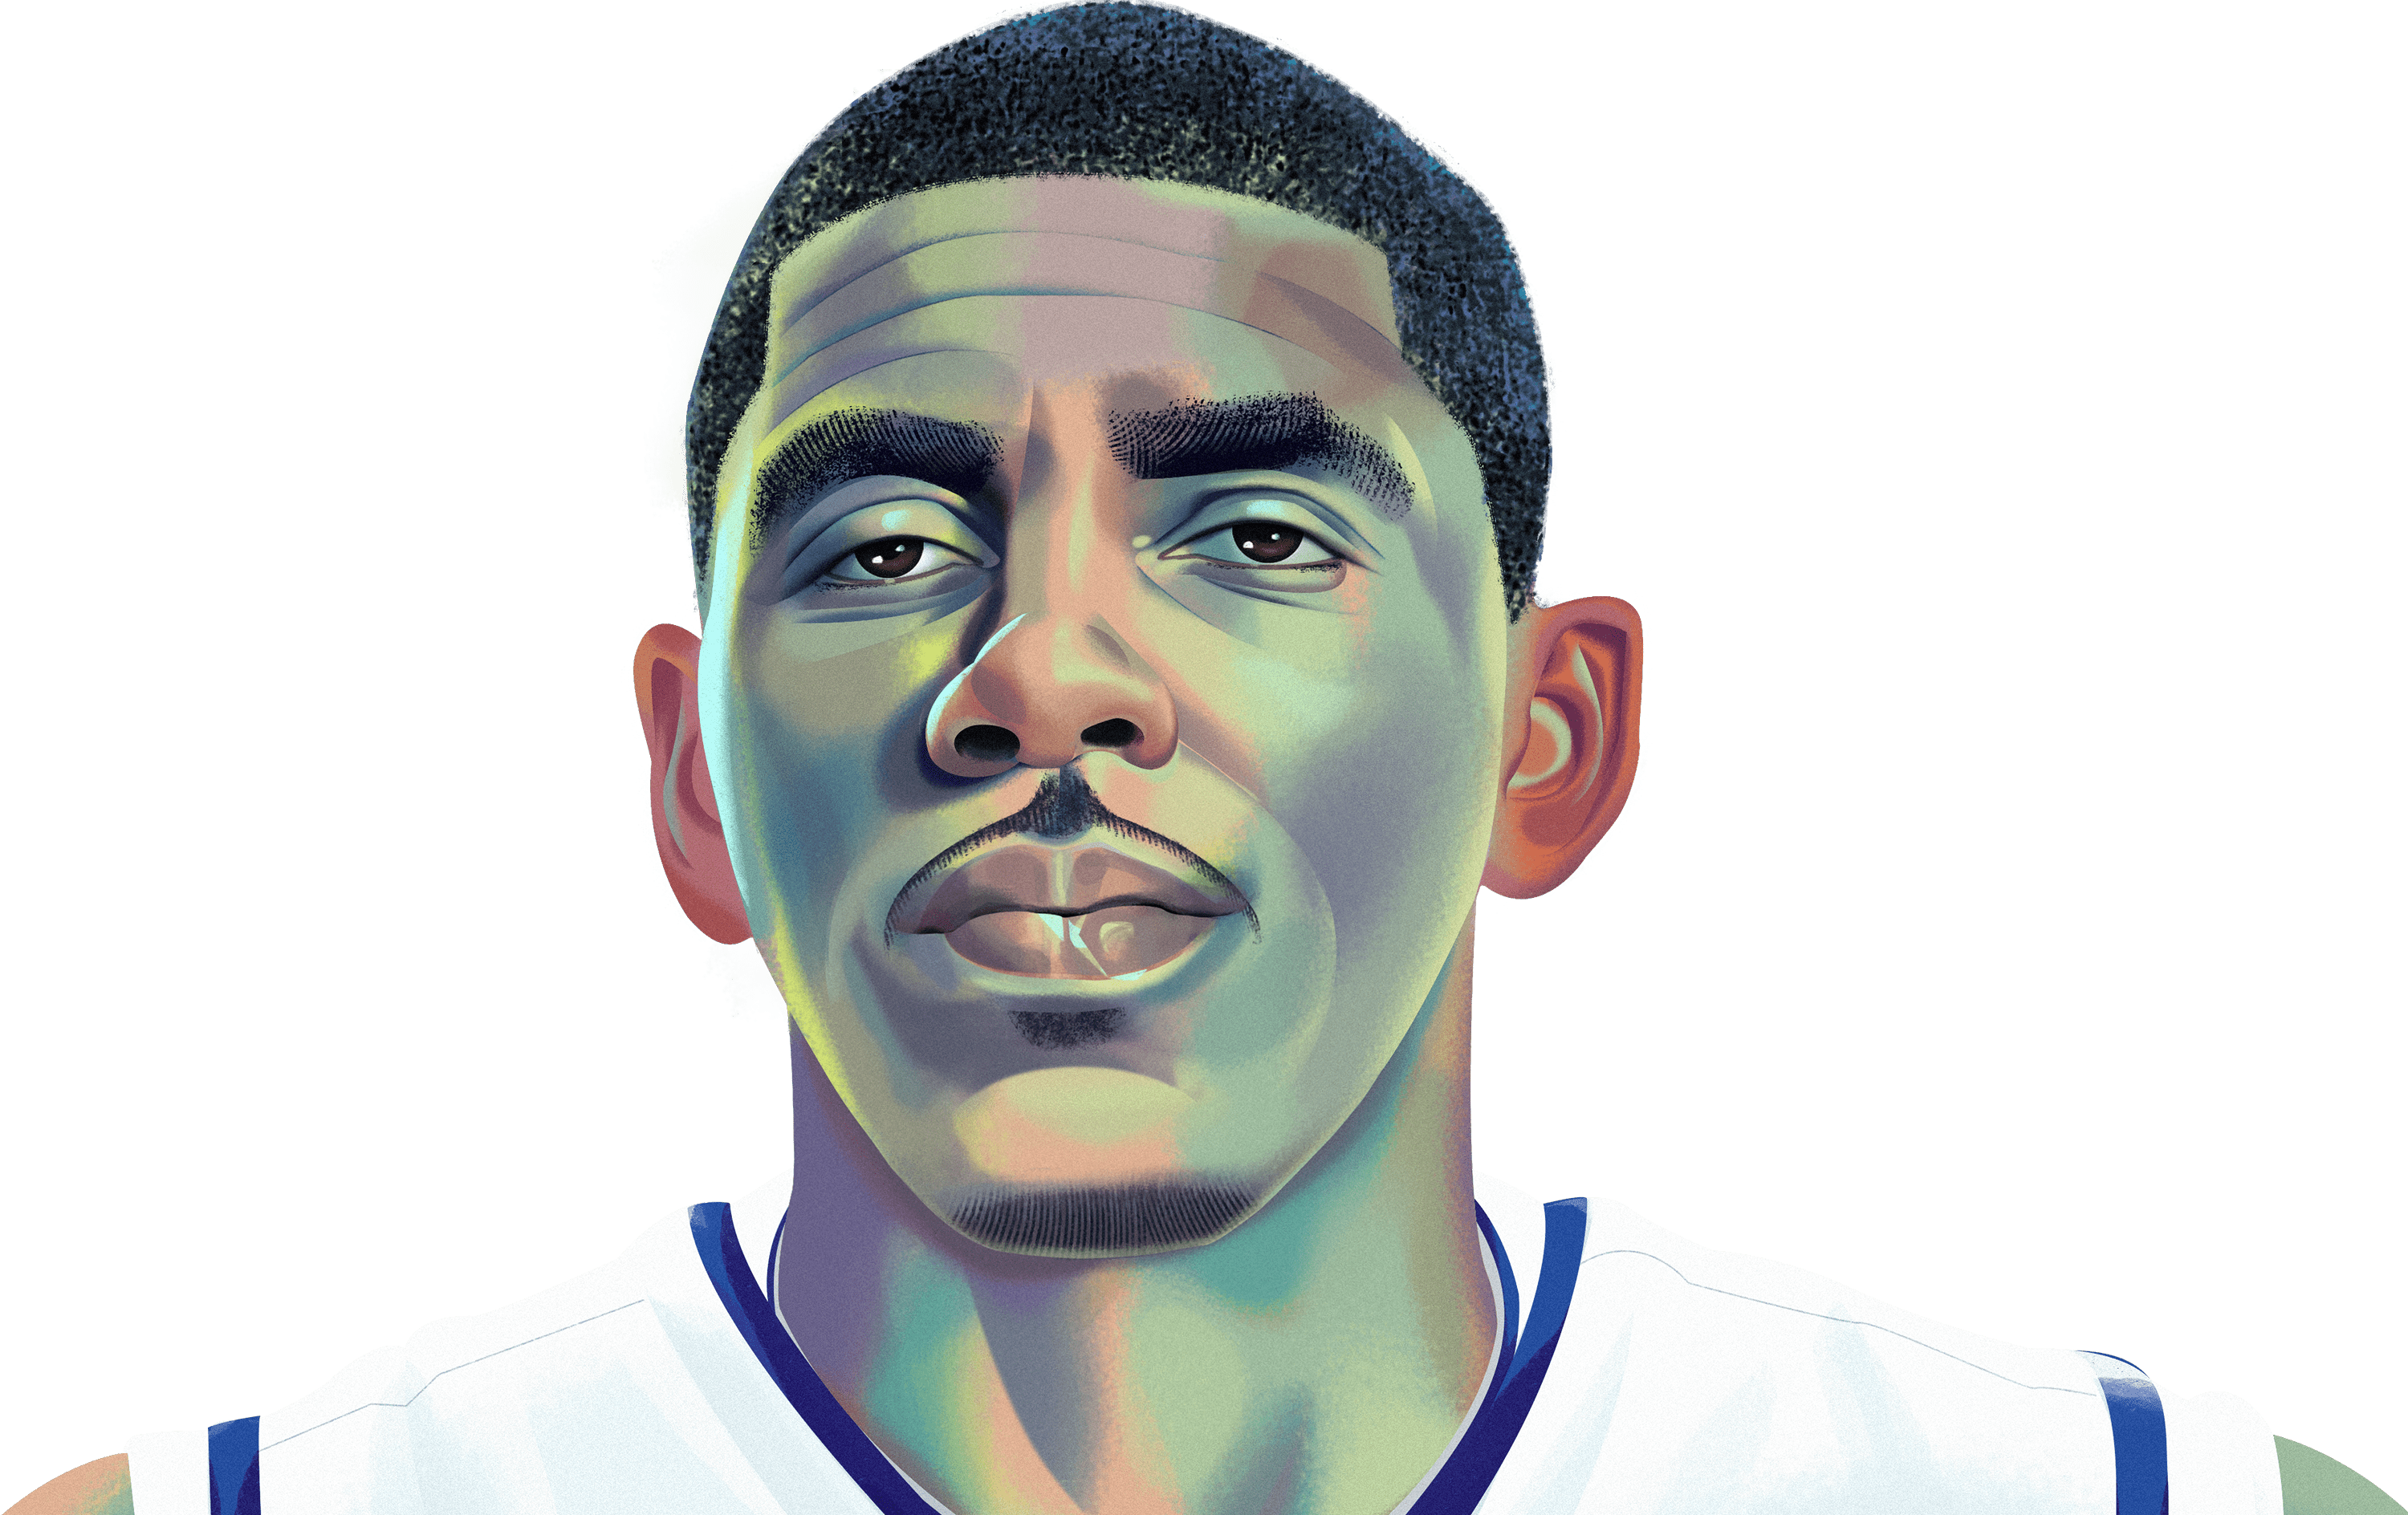 Nba drawing kyrie irving. One and done to